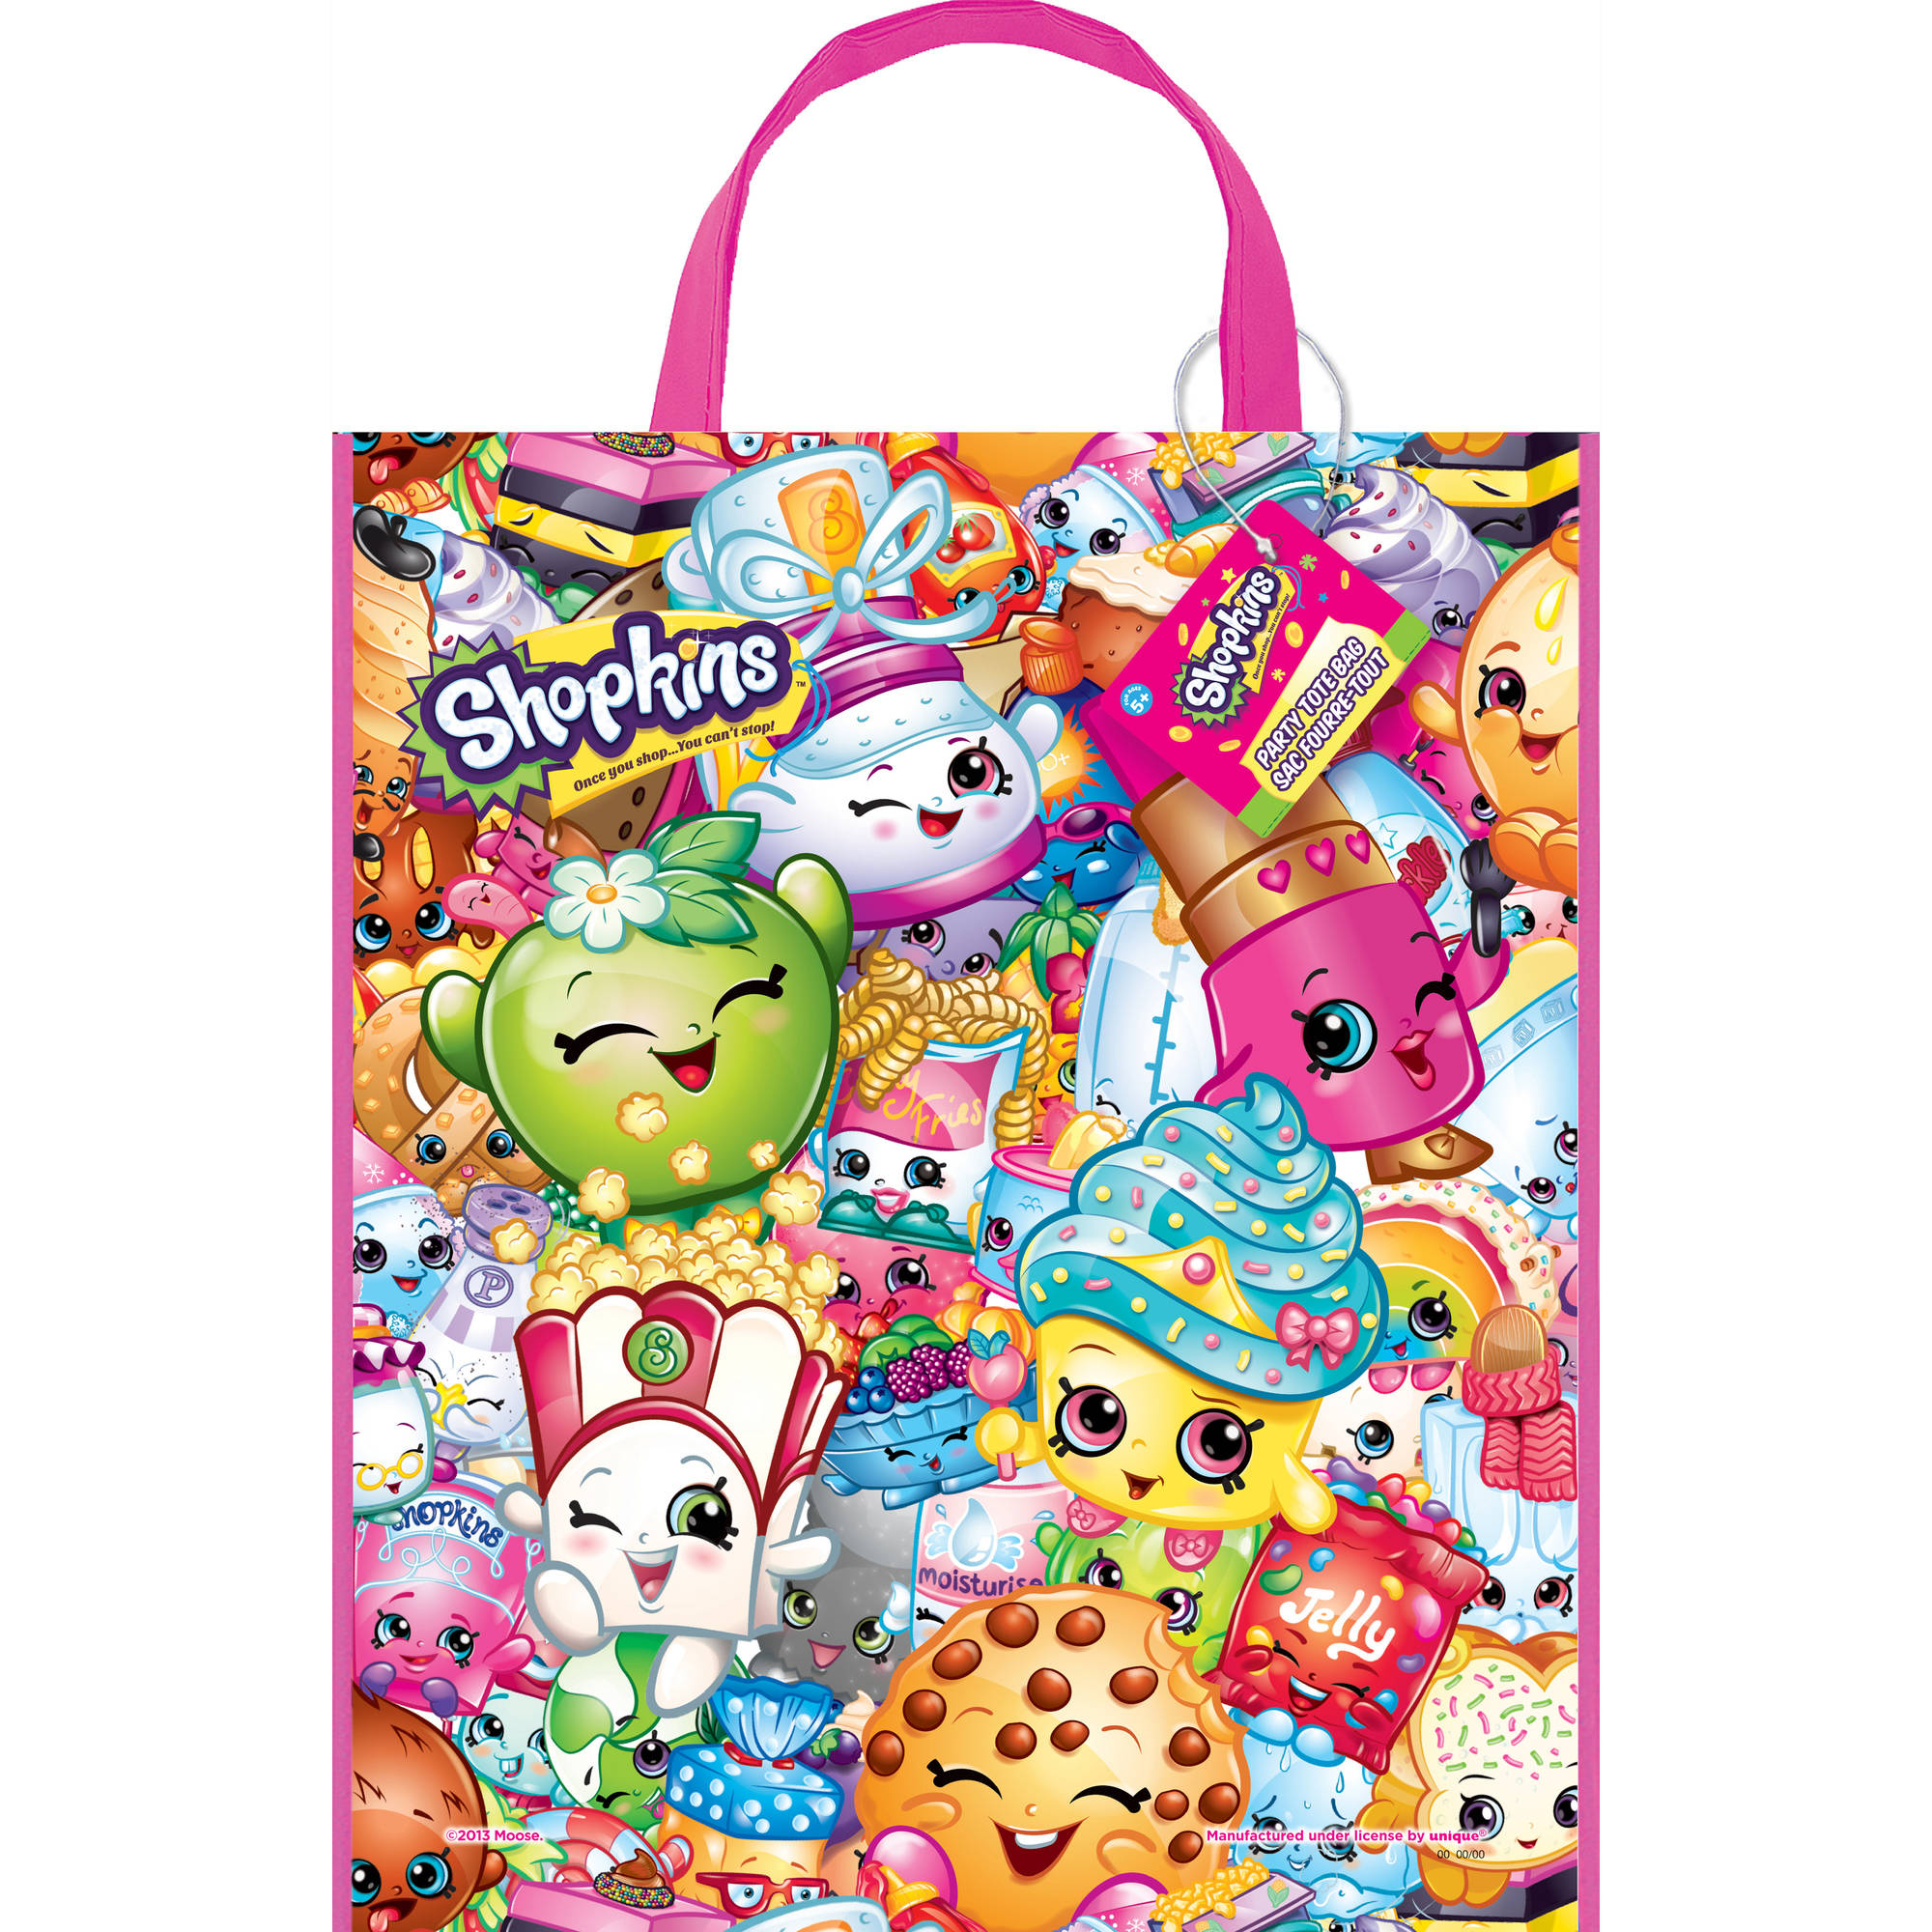 Large Plastic Shopkins Goodie Bags, 13 x 11 in, 12ct